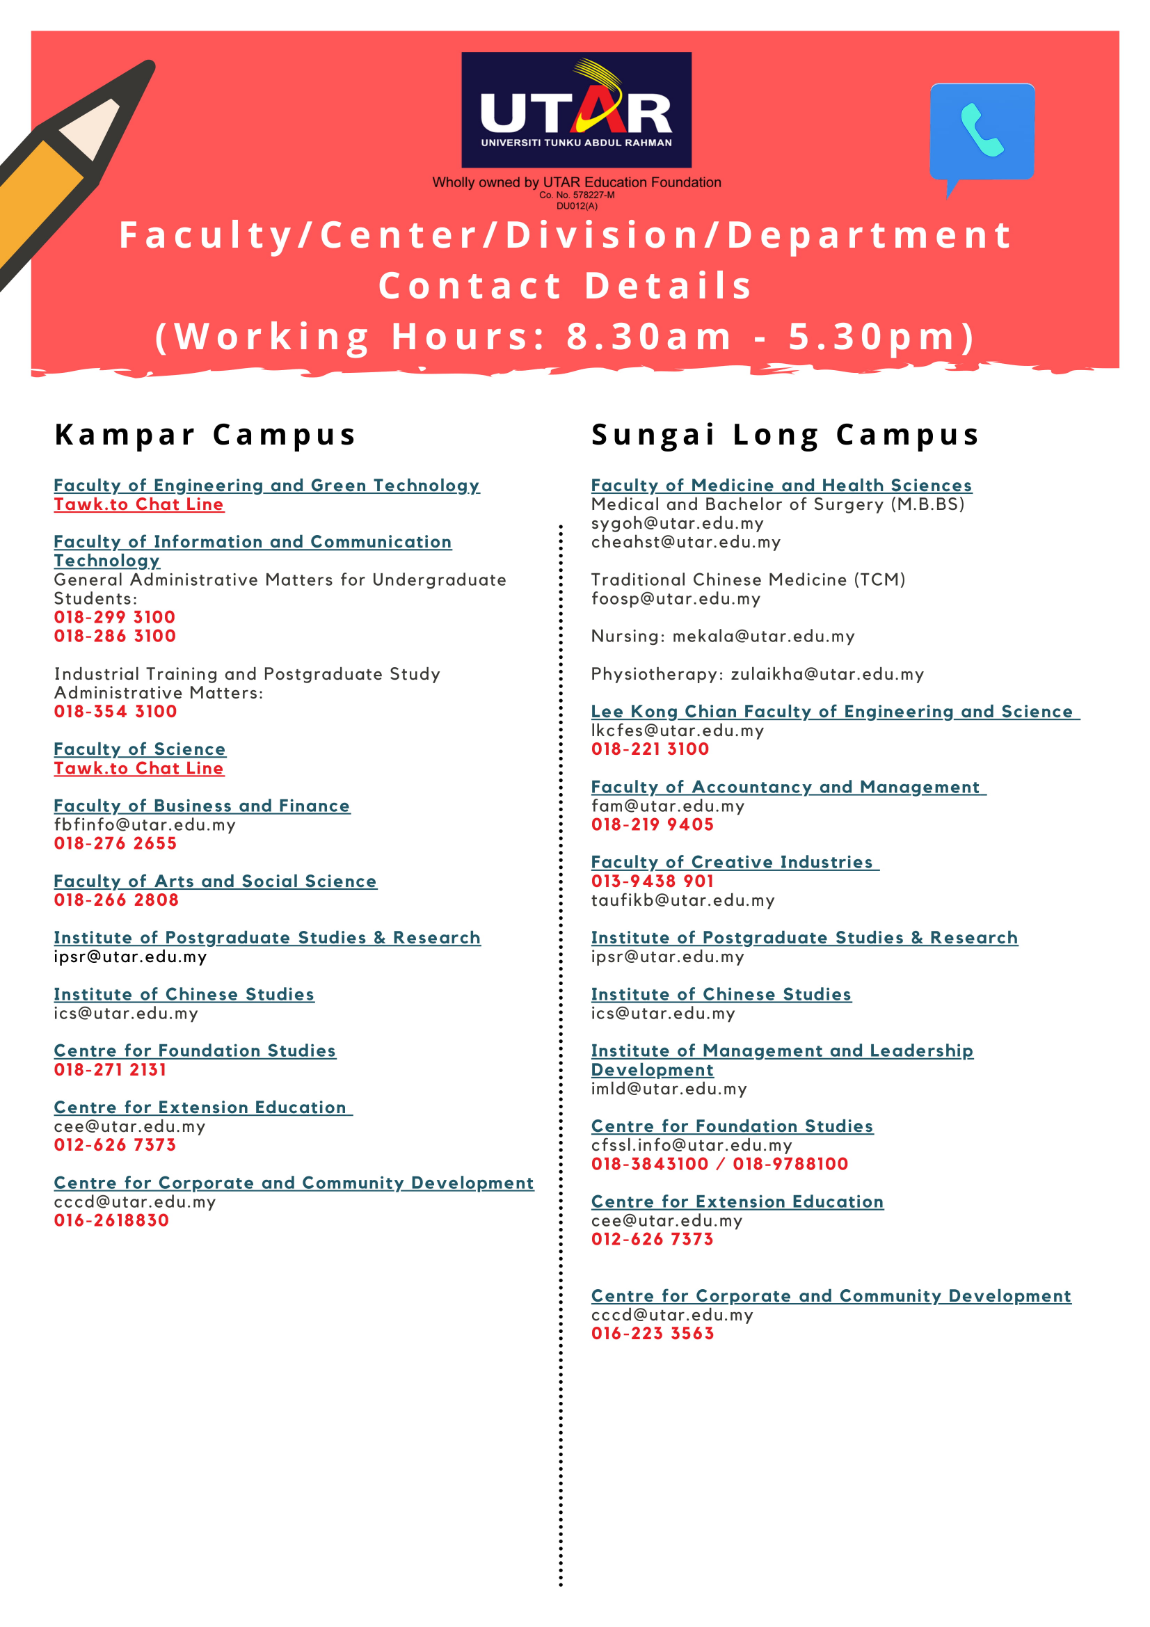 contact of various faculty institute centre in utar